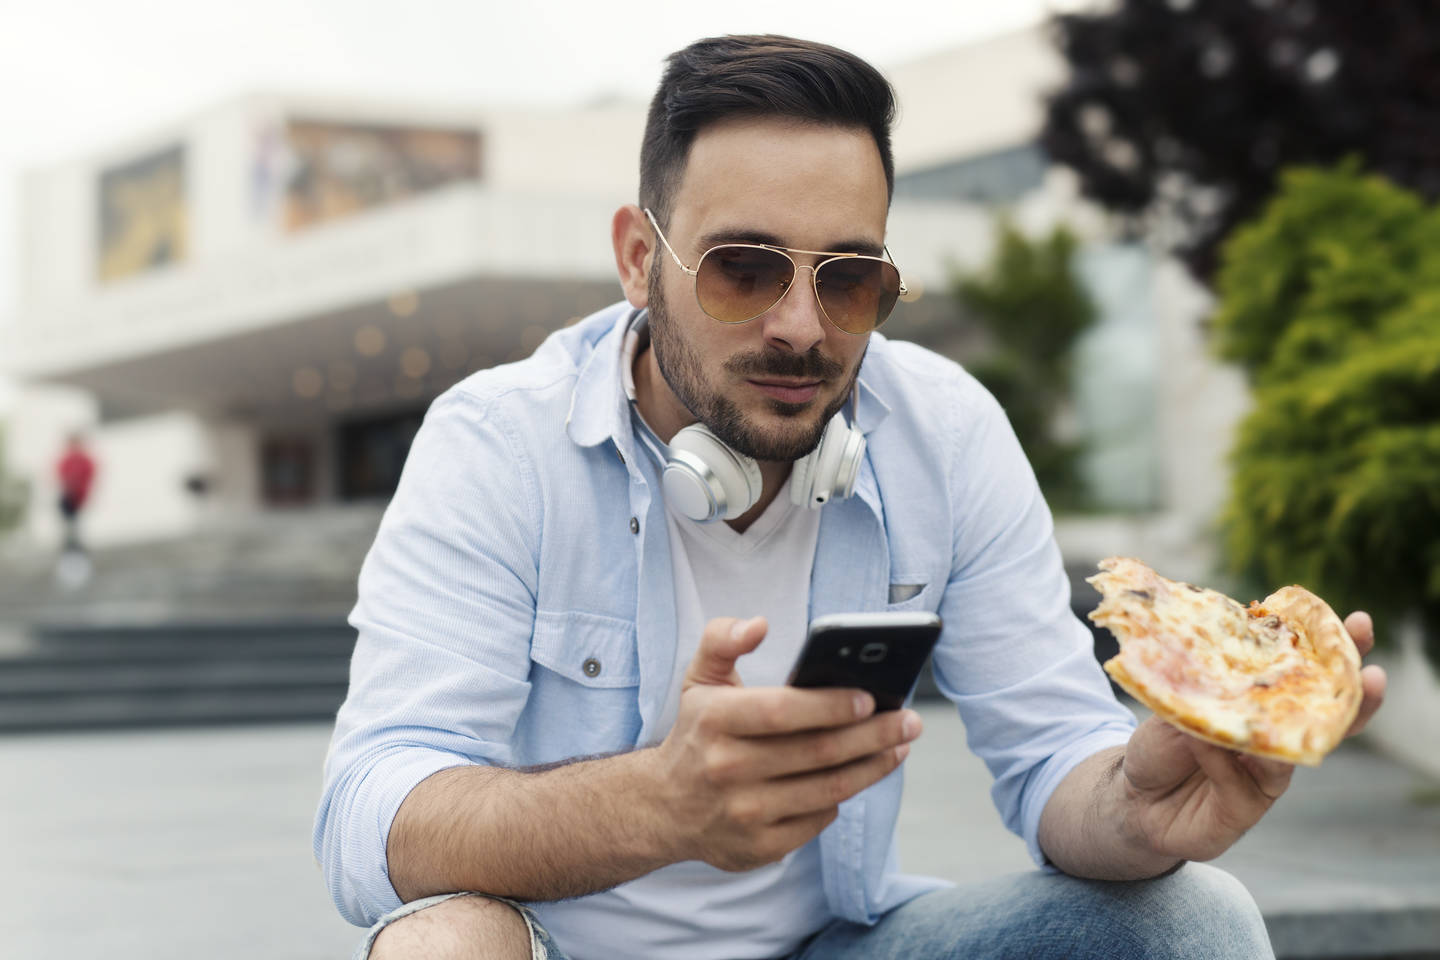 Man eating pizza on the phone